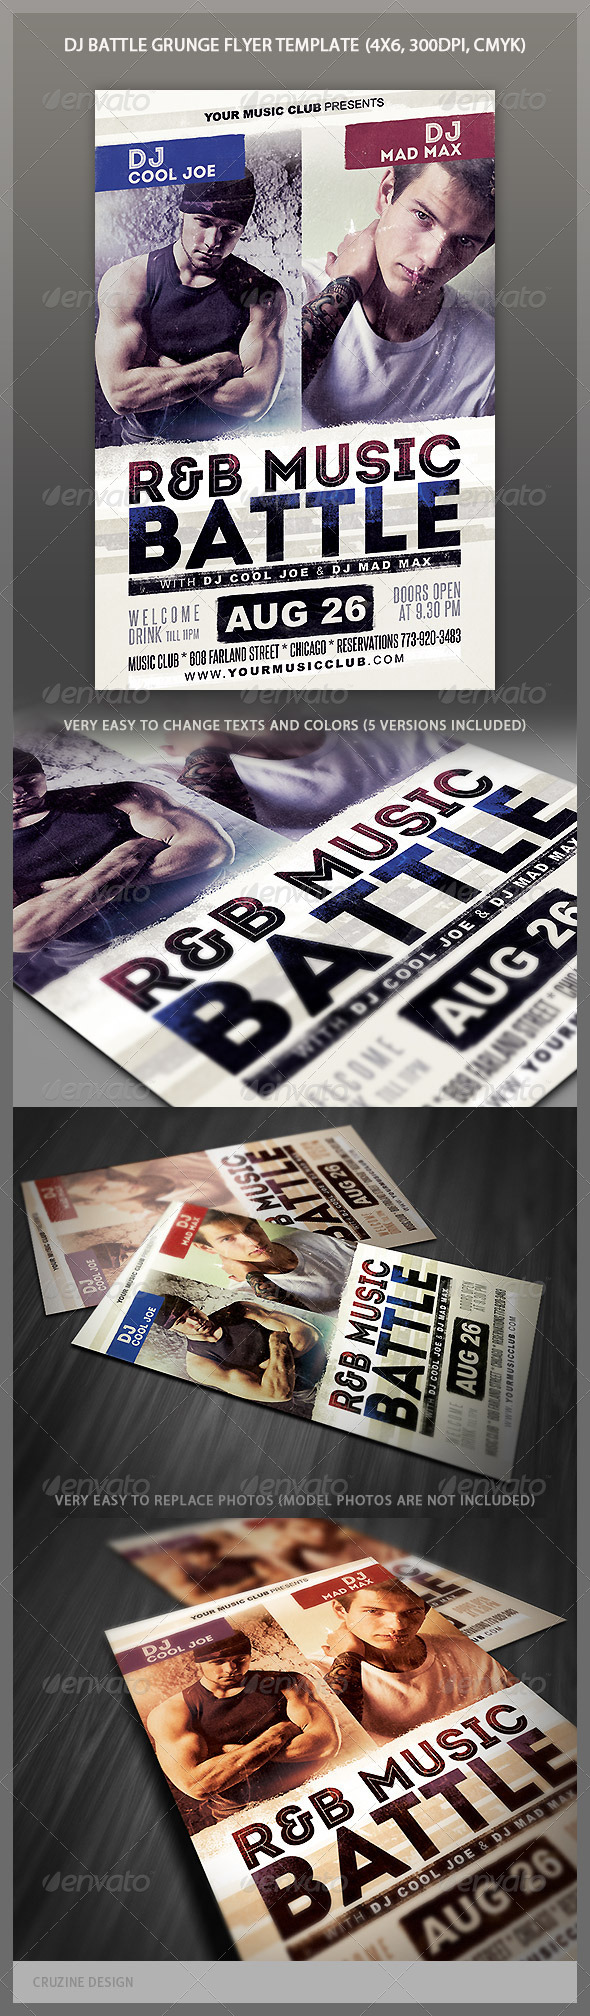 GraphicRiver Music Battle Grunge Party Flyer 5245663